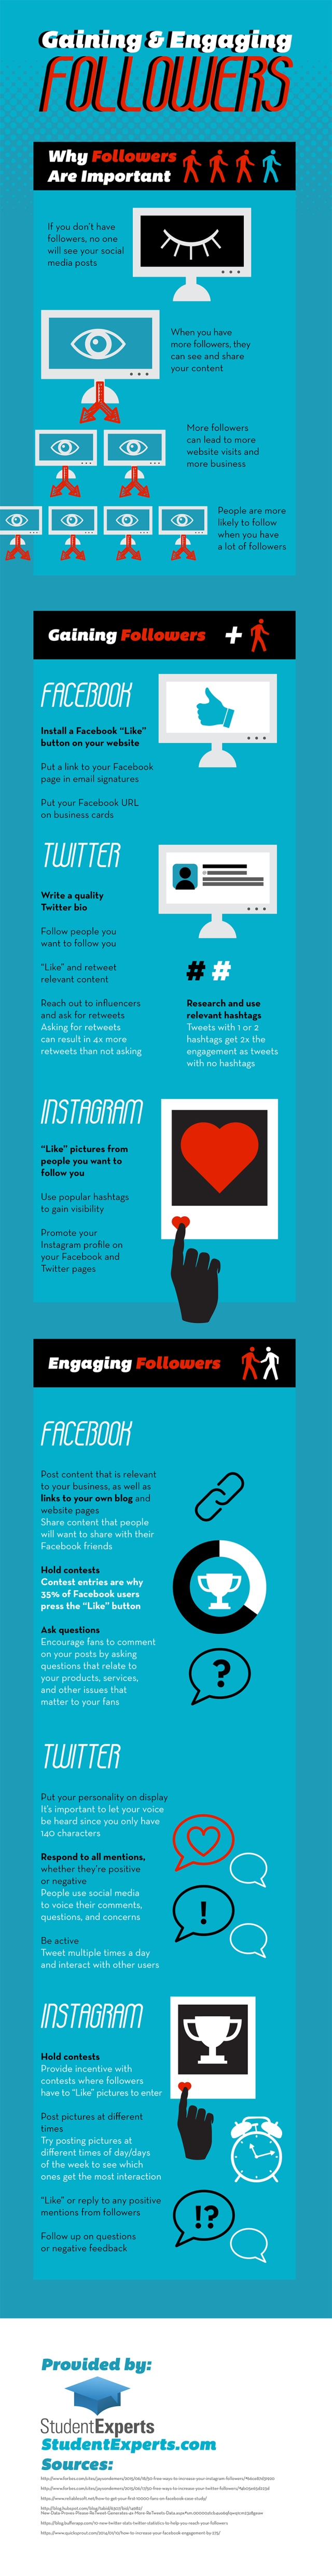 24 Tips to Gain & Engage Followers on Facebook, Twitter & Instagram